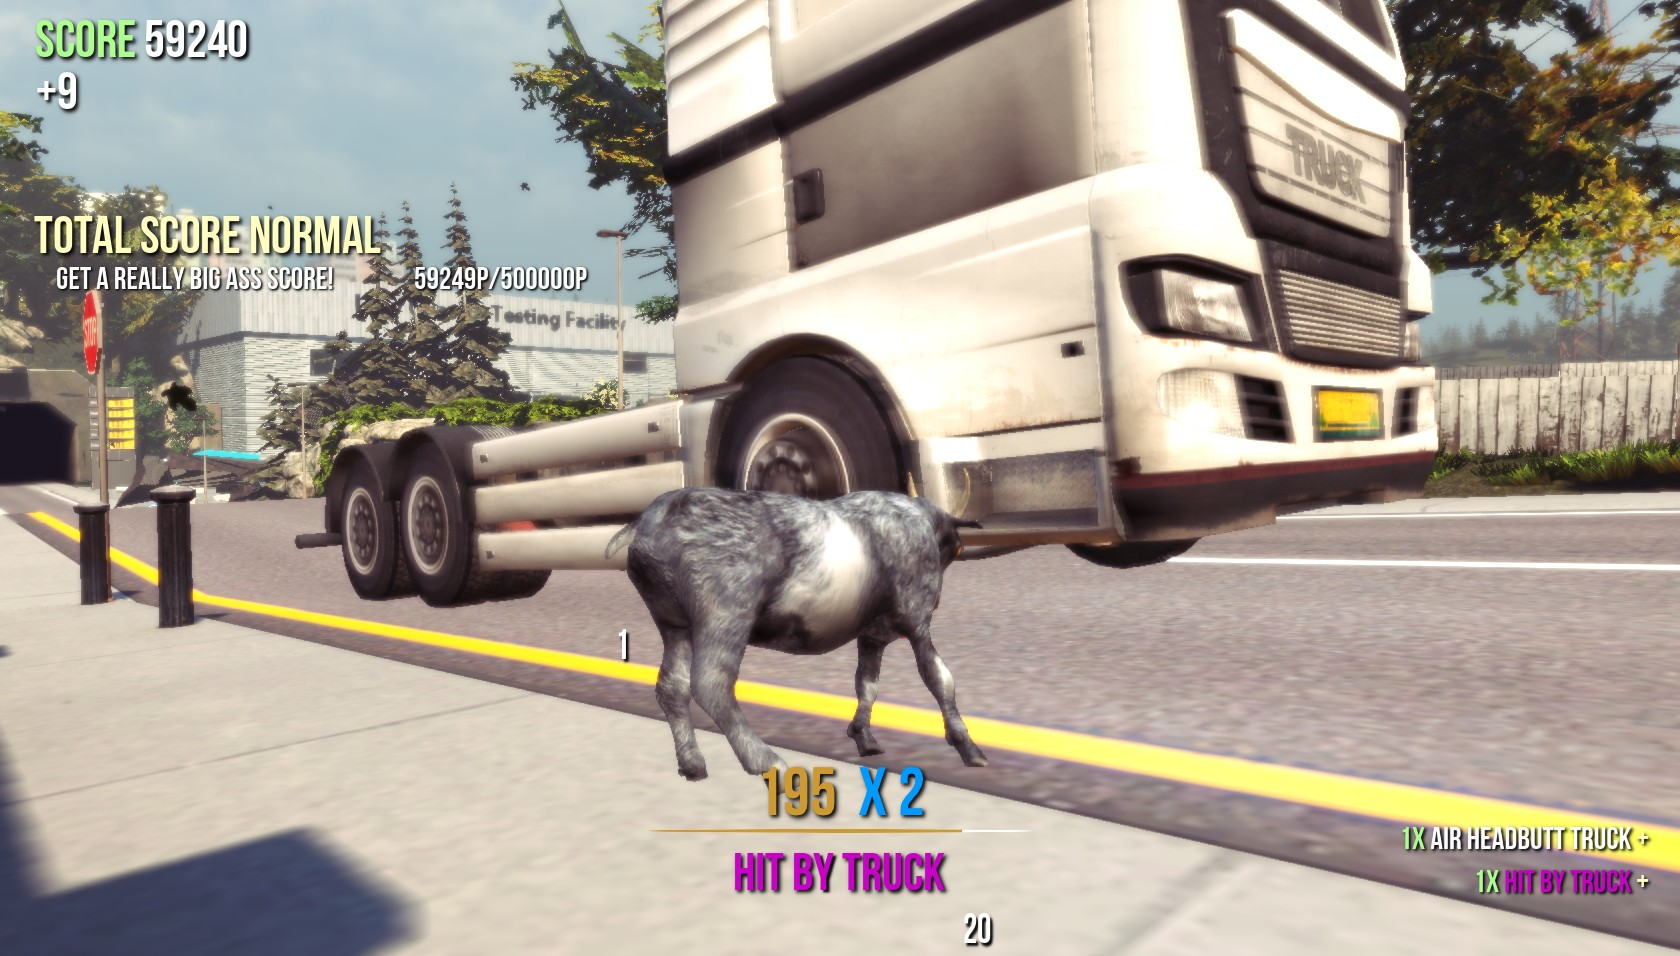 Download free goat simulator pc game full version download free.